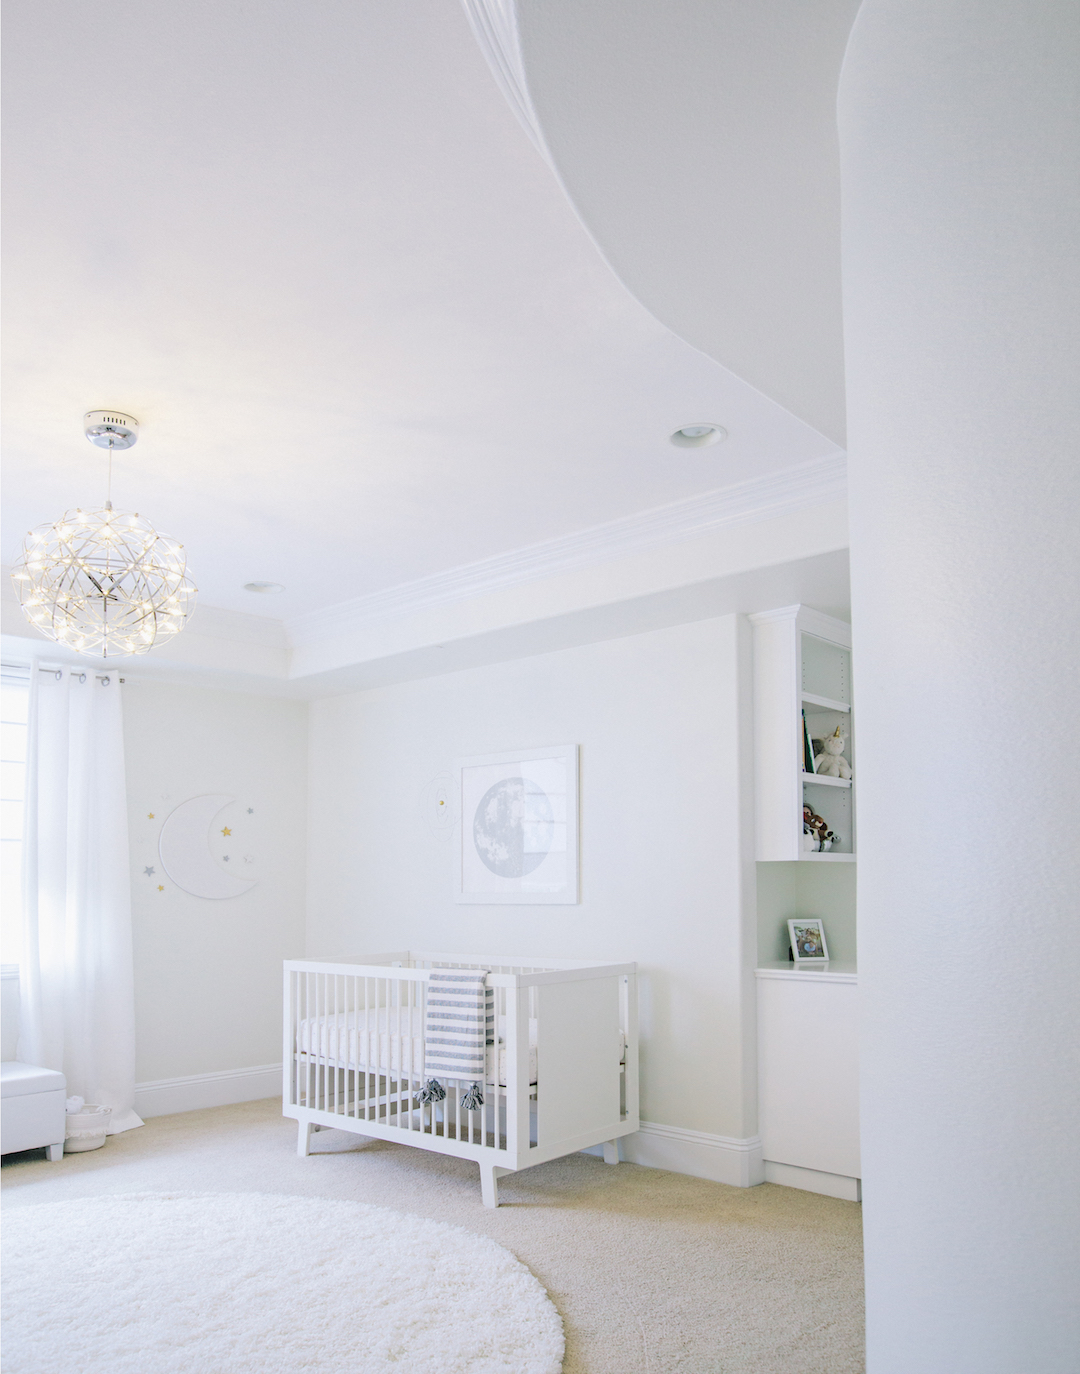 All White Celestial Nursery by Little Crown Interiors